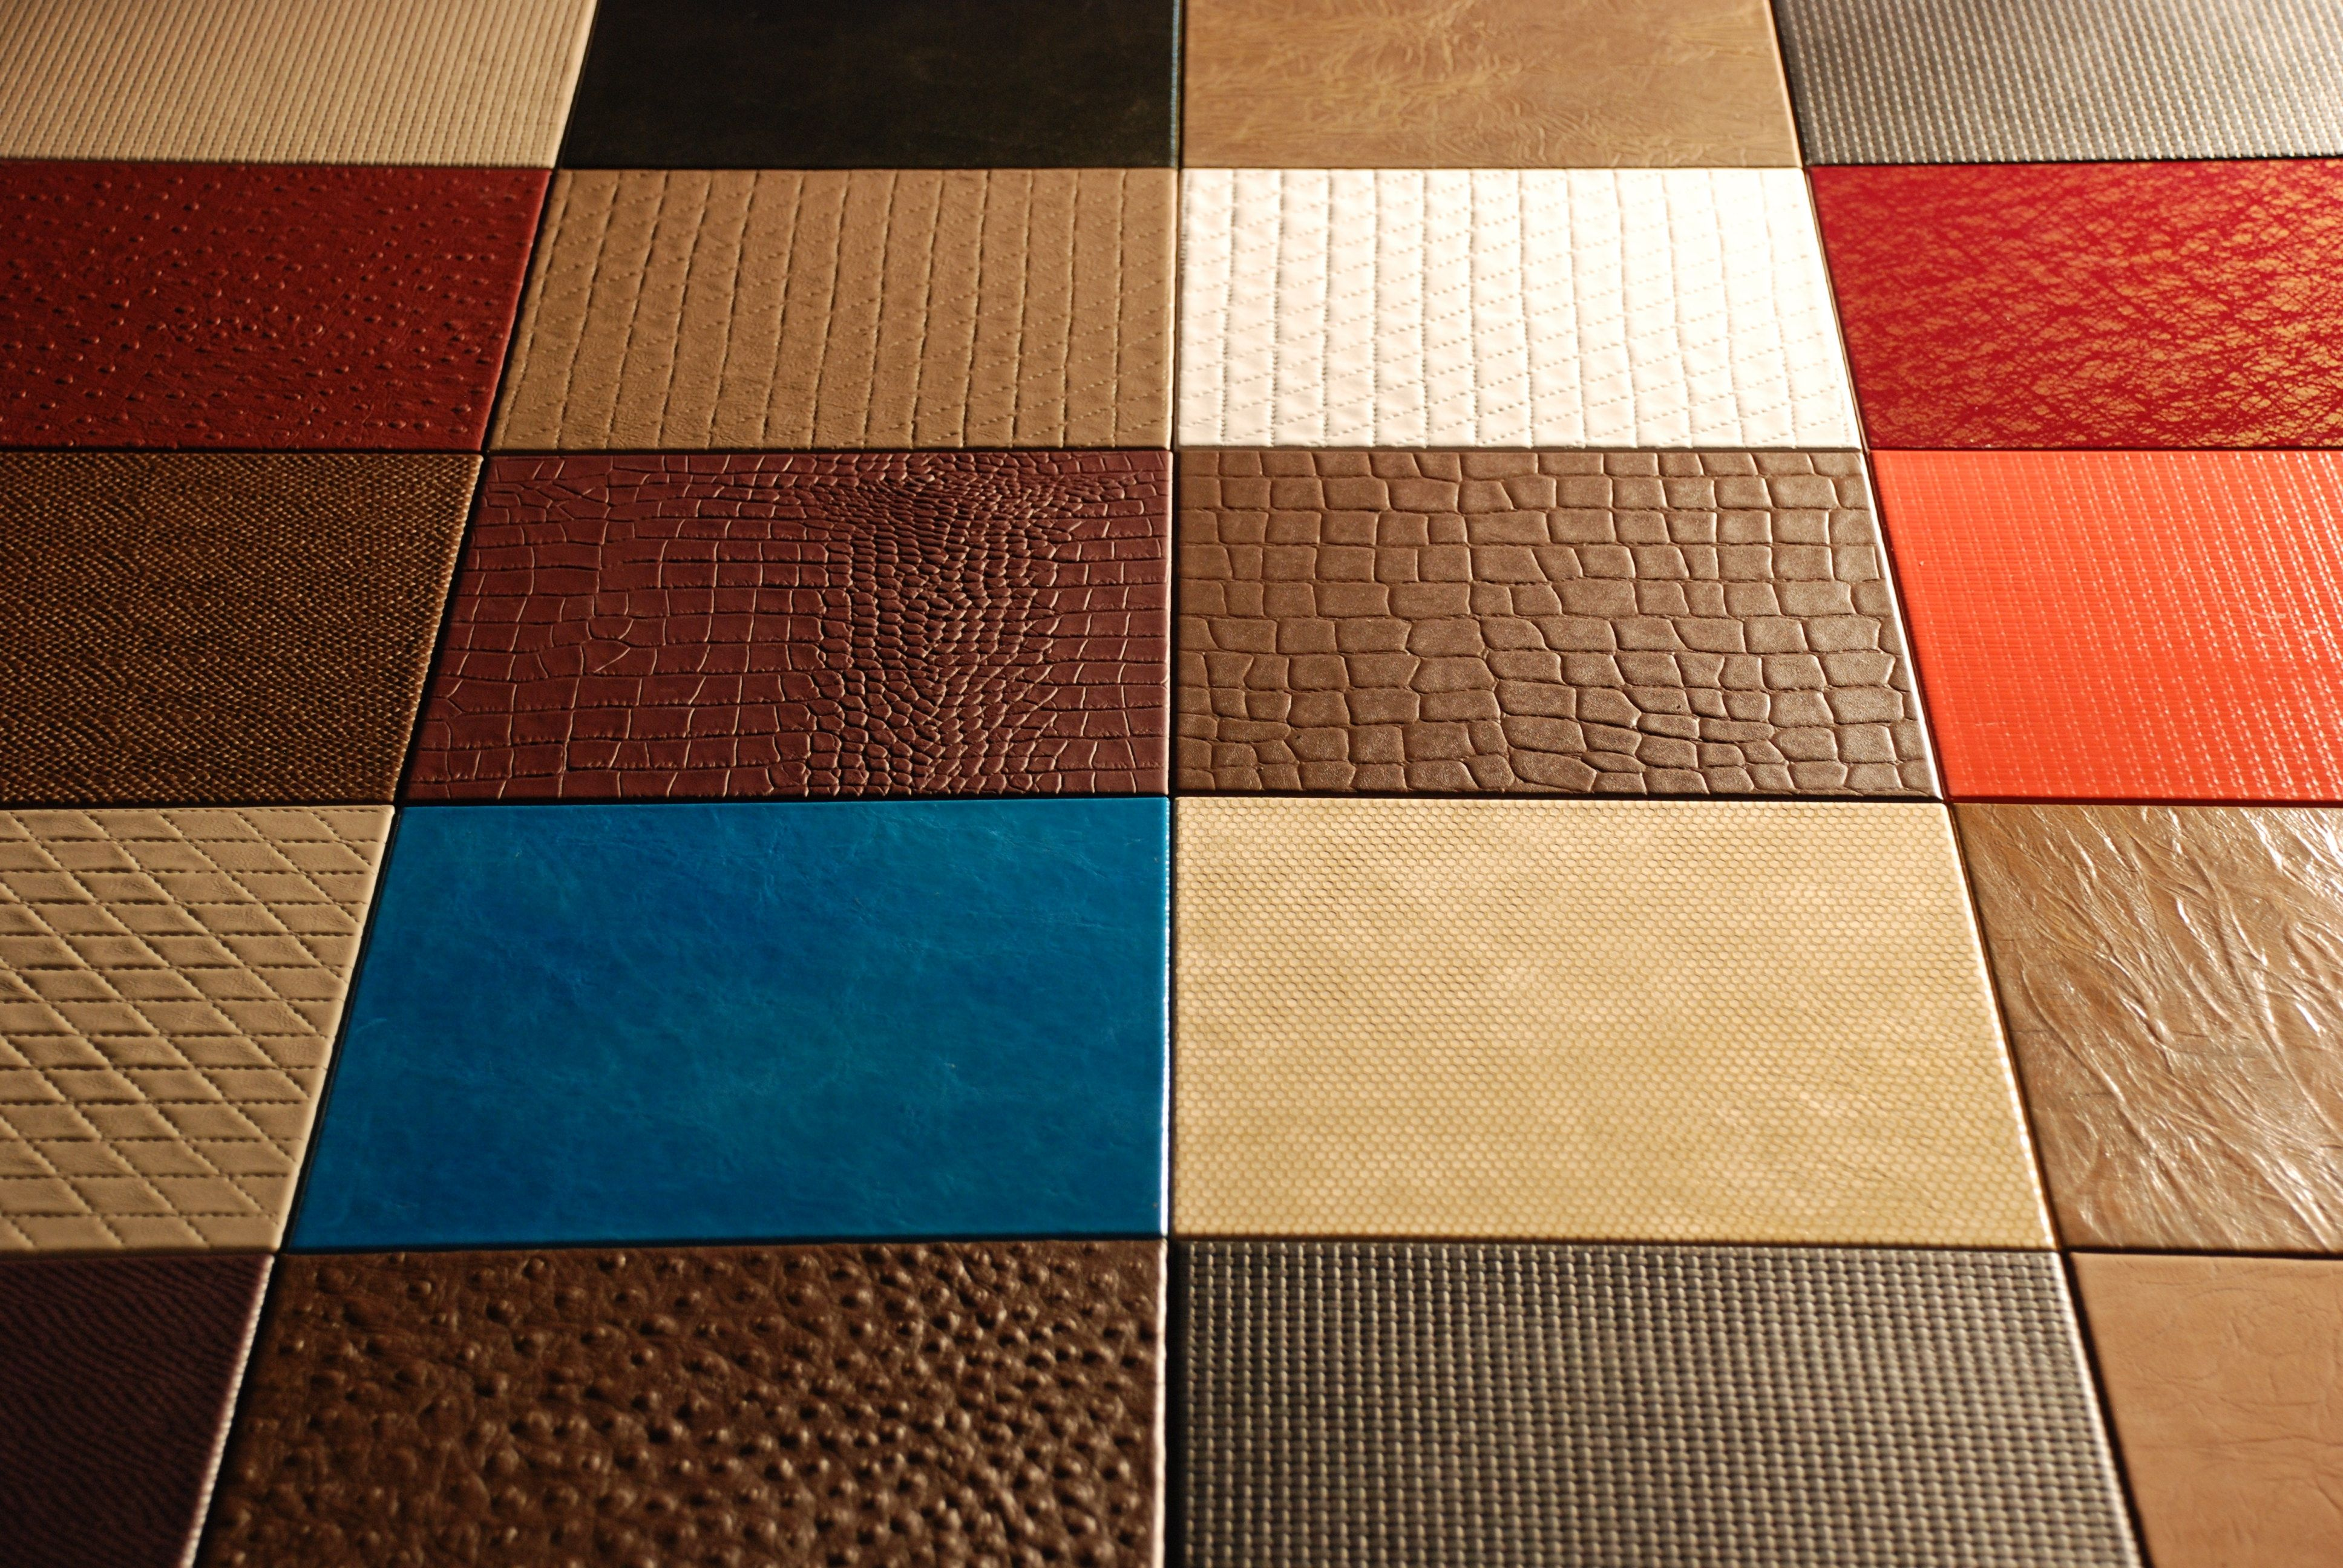 Luxury italian leather tiles on designer pages 100 waterproof luxury italian leather tiles on designer pages 100 waterproof stain proof certified dailygadgetfo Gallery